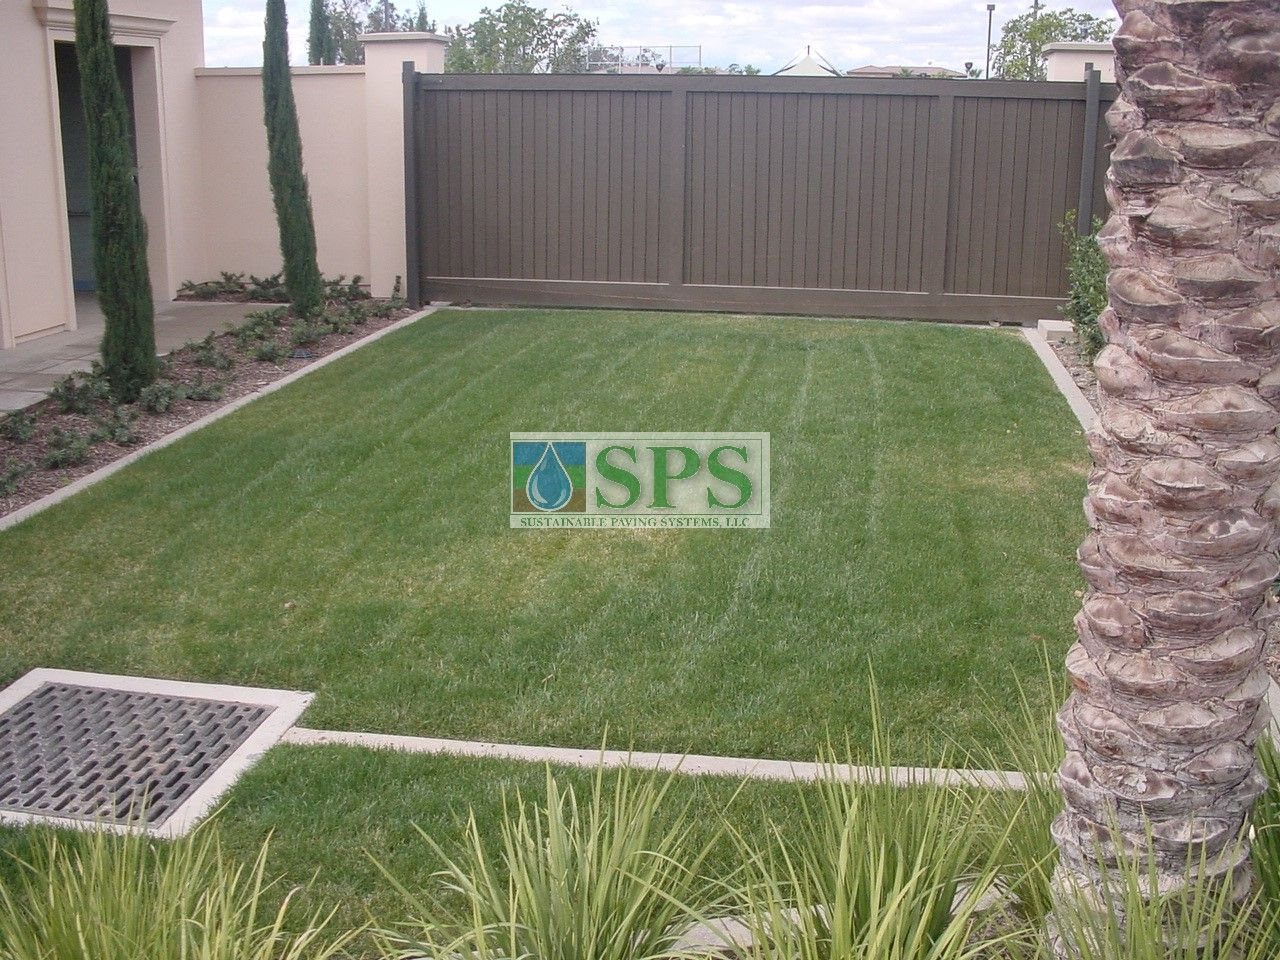 Fully Concealed Grasscrete Systems allow Water Management and Vehicle Access at Woodbury Community Development in Irvine, CA.